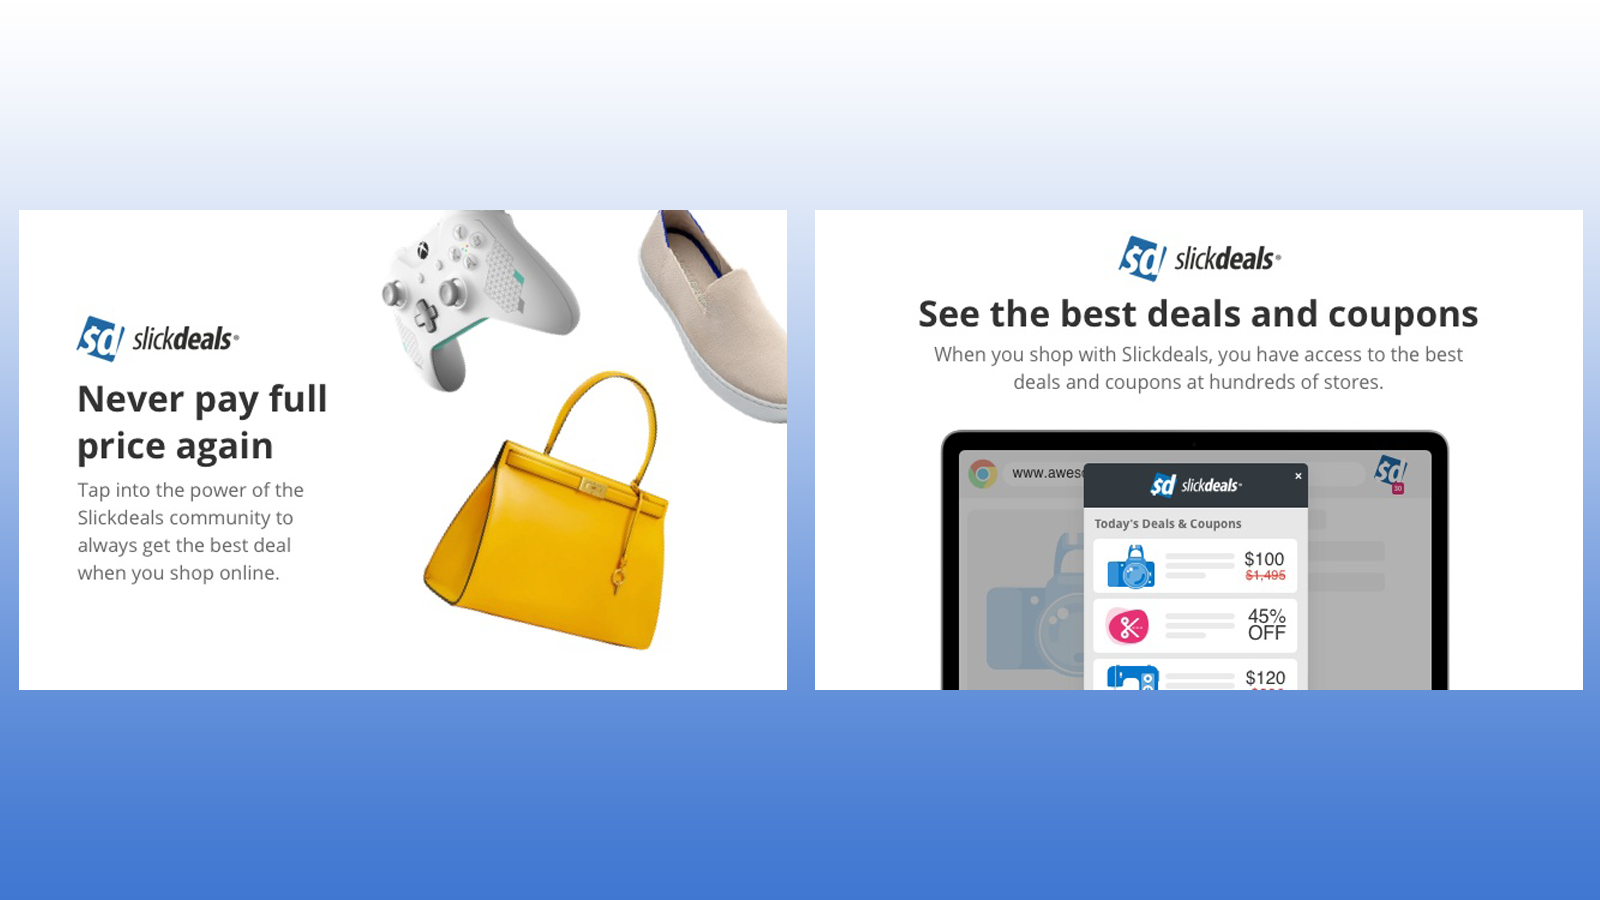 SlickDeals Chrome browser extension showing good deals on products like clothing, games, and accessories